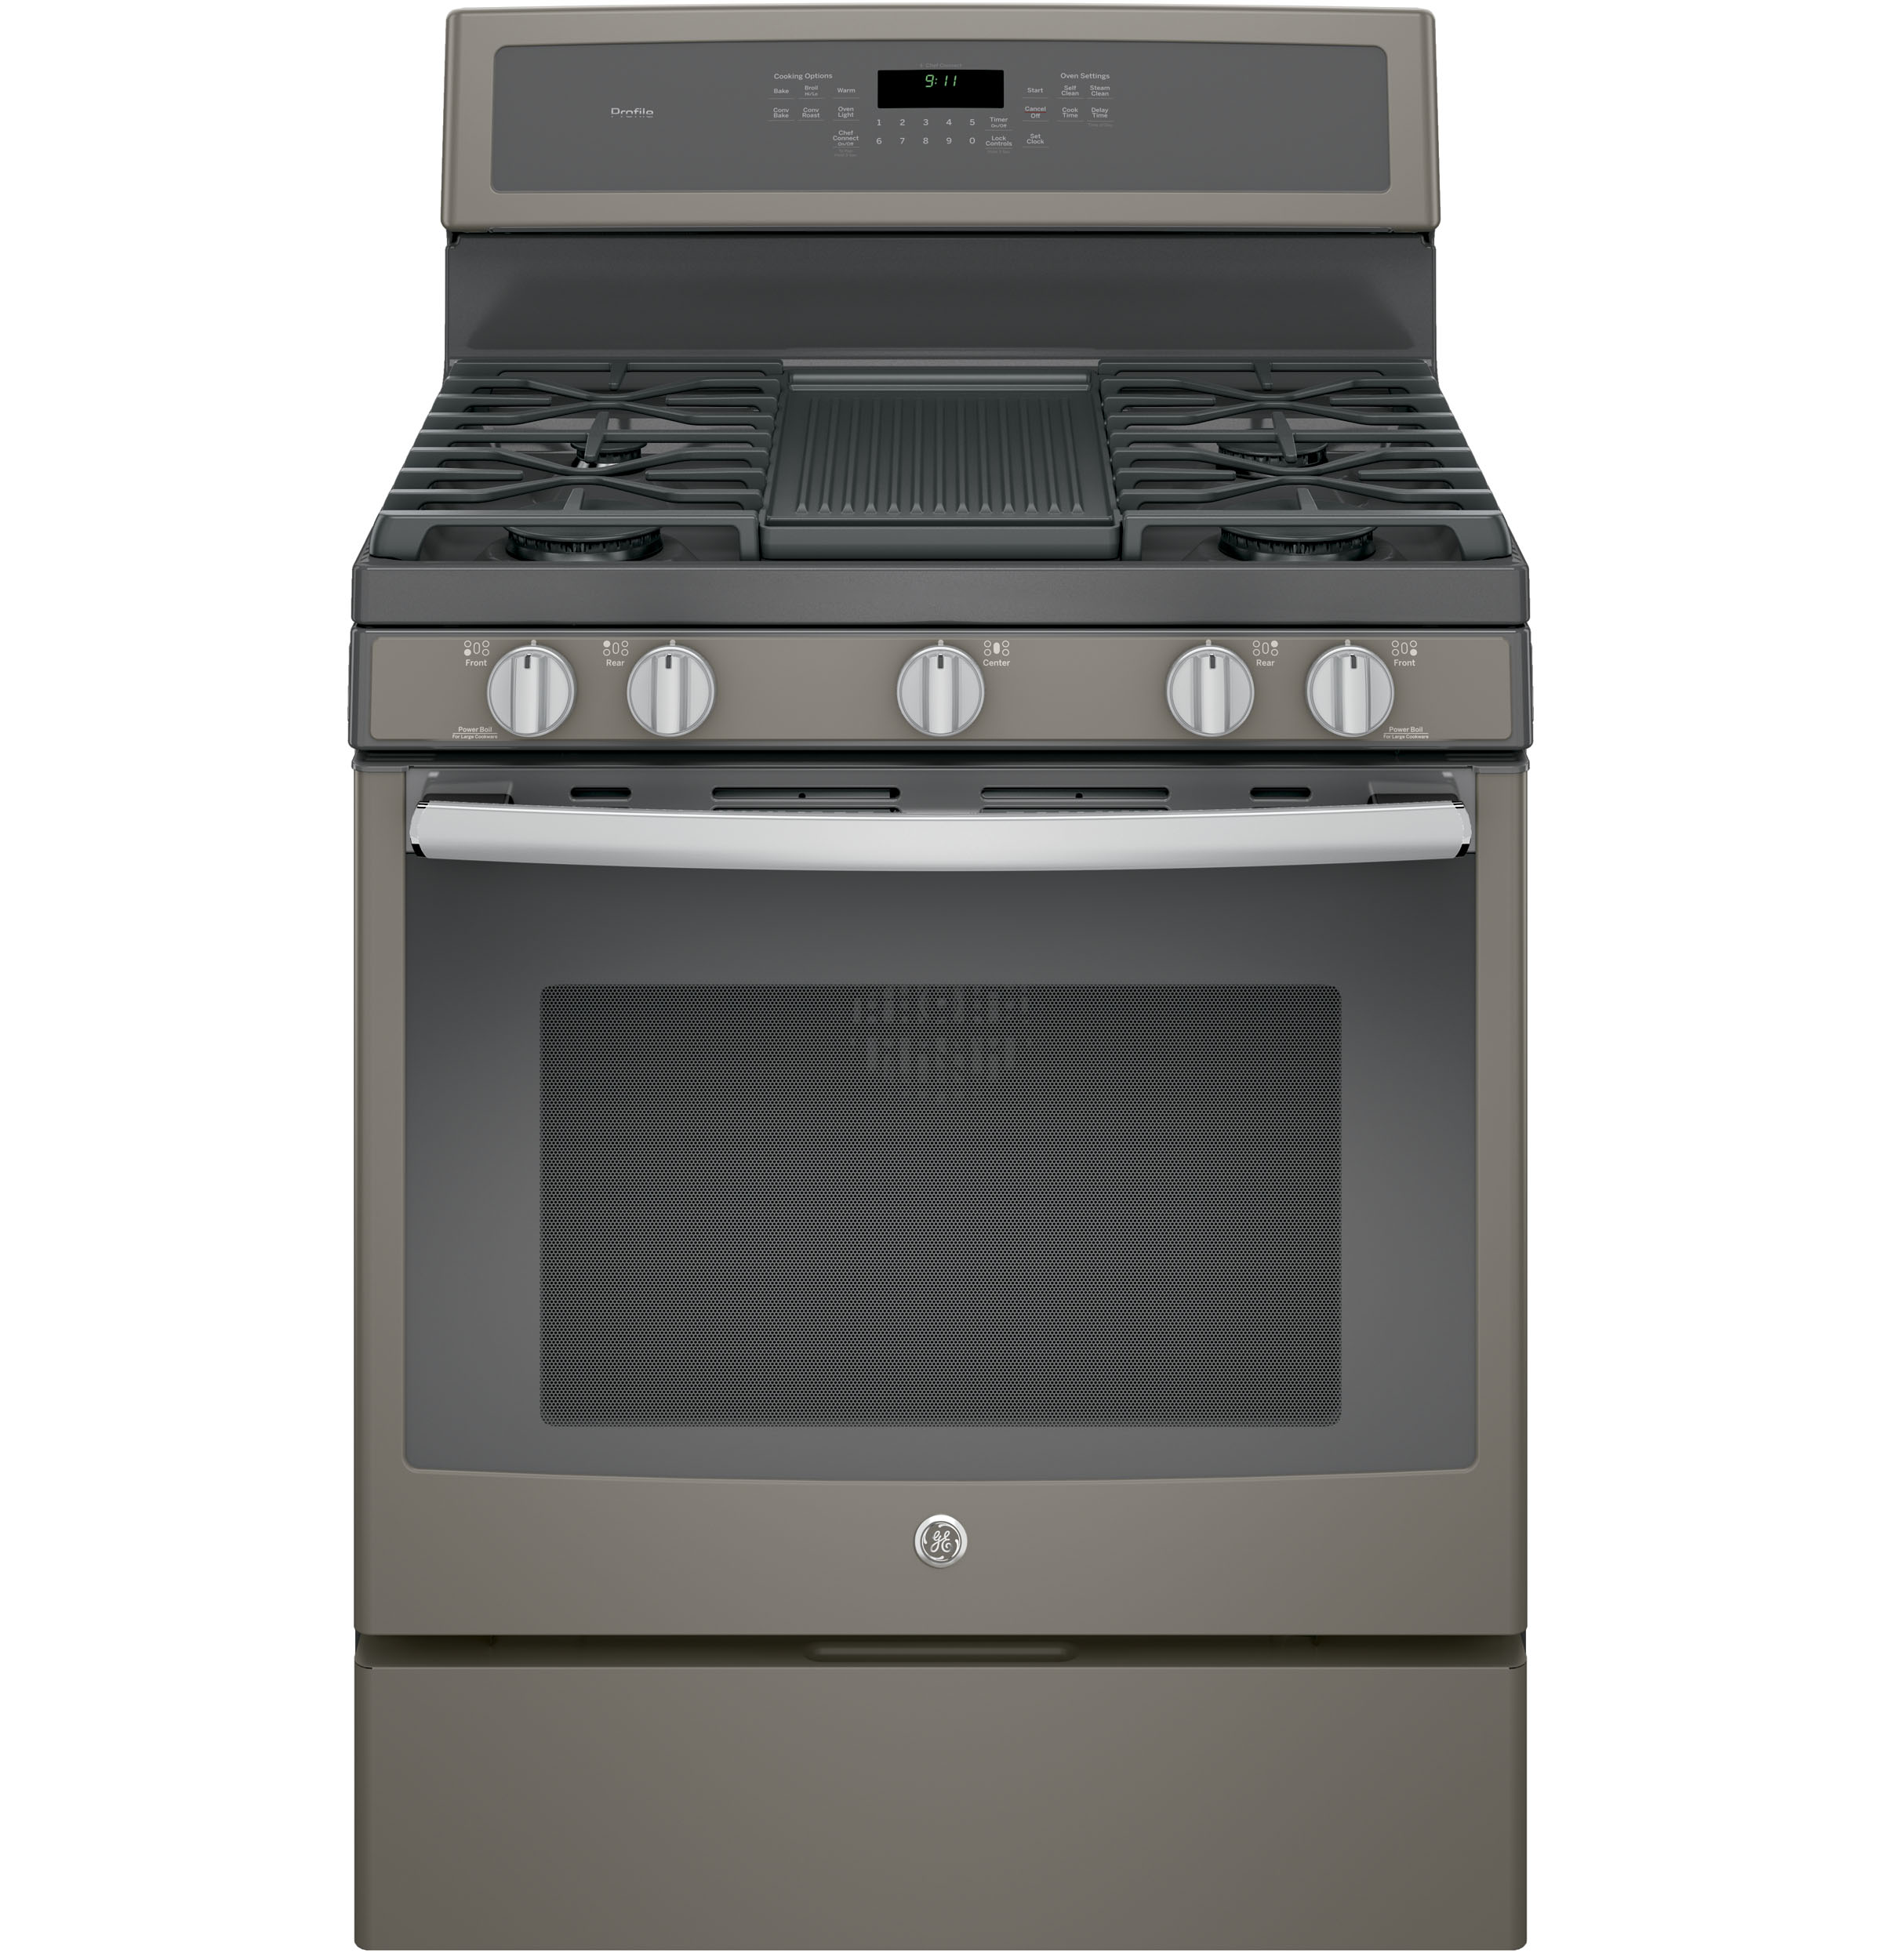 "Model: PGB911EEJES | GE Profile GE Profile™ Series 30"" Free-Standing Gas Convection Range"